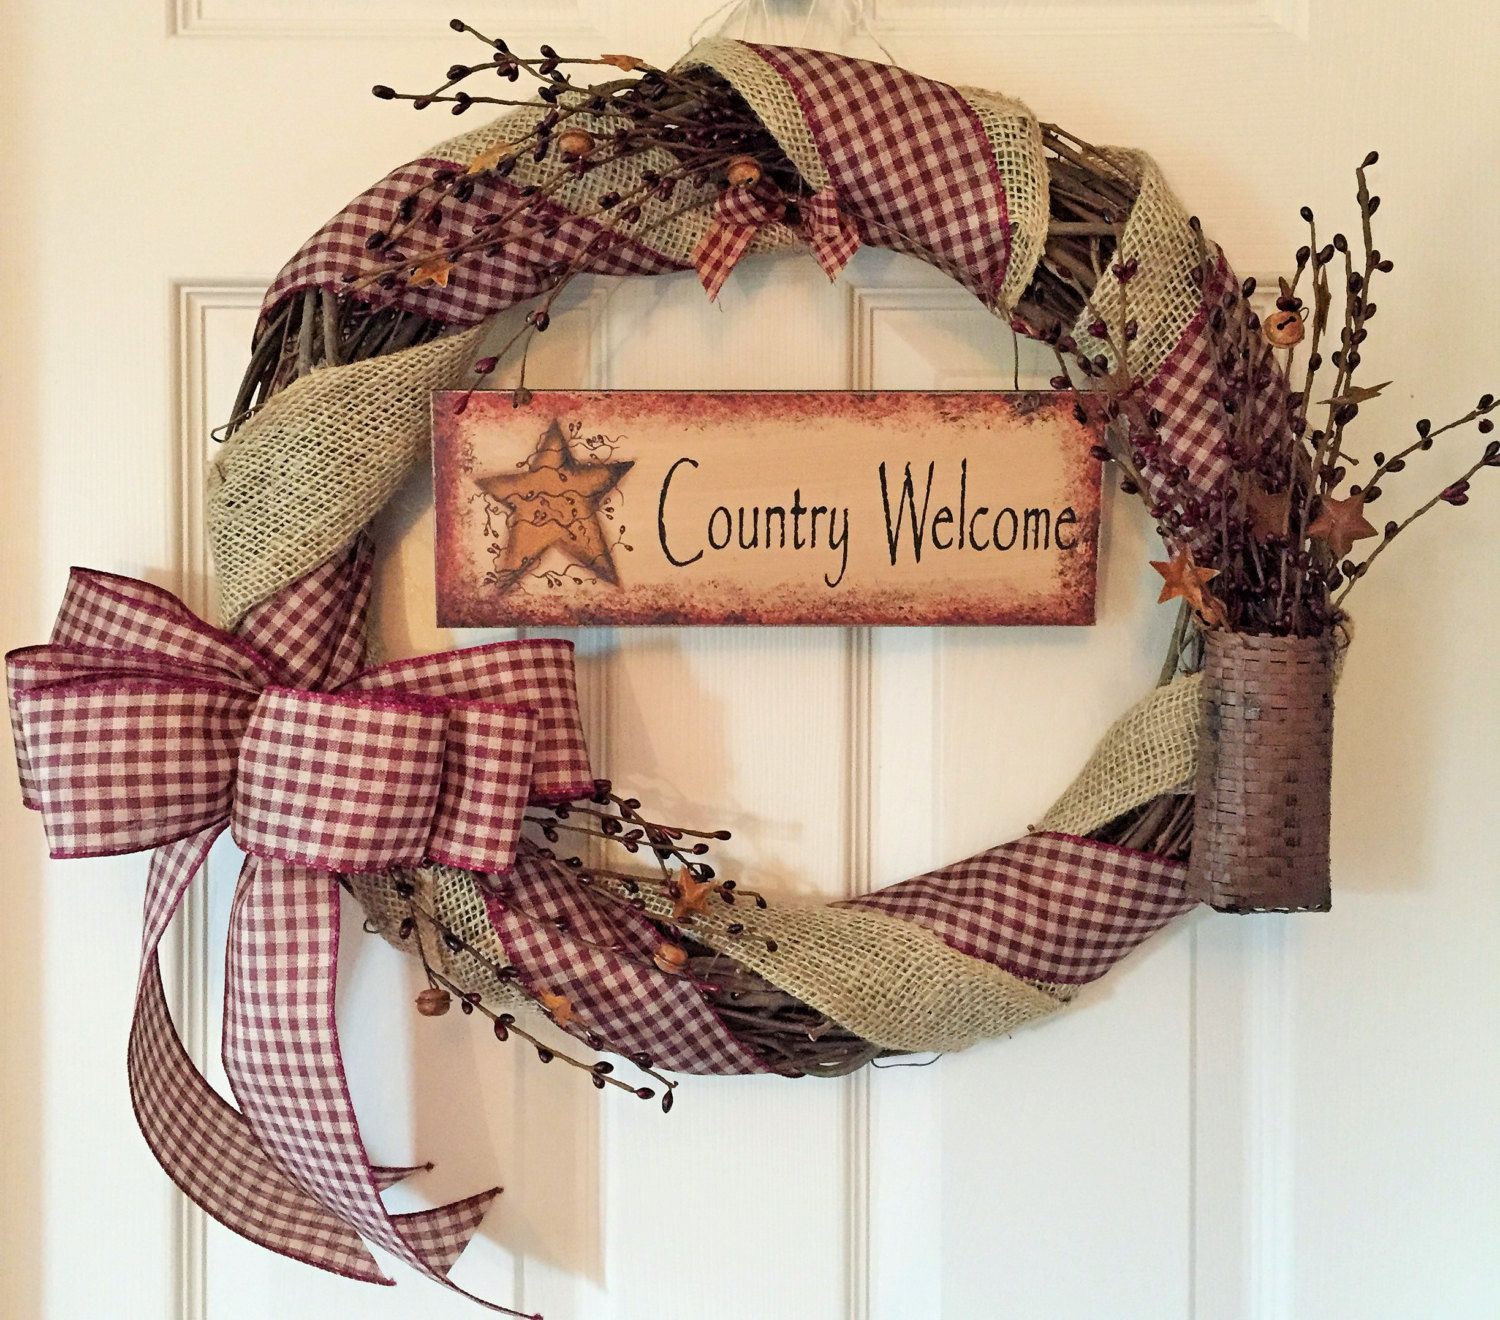 Grapevine wreath with burlap and gingham ribbon primitive wreath grapevine wreath with burlap and gingham ribbon welcome wreath front door wreath by chewsiecreations on etsy rubansaba